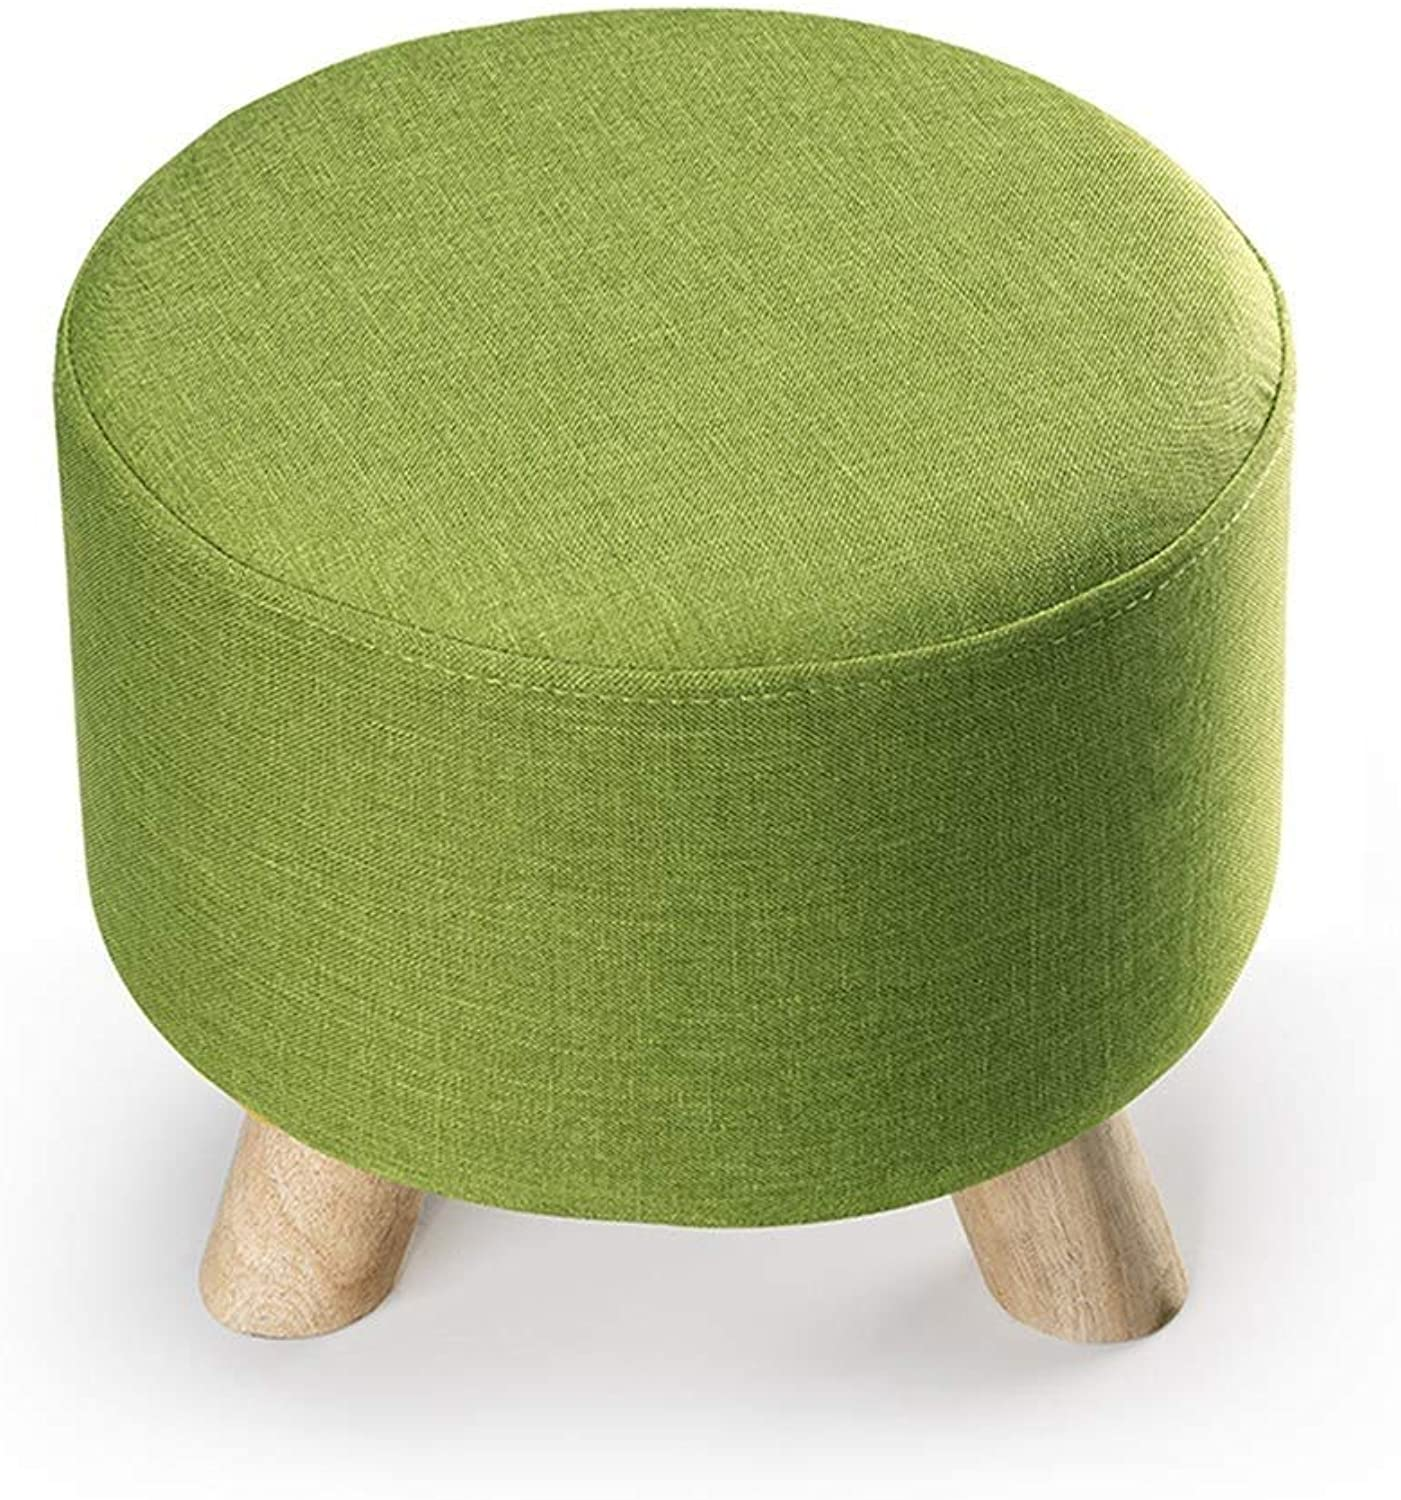 European Removable and Washable Fabric Solid Wood Three-Legged Small Stools Change shoes Stool Sofa Bench Wear shoes Stool FENPING (color   Green)